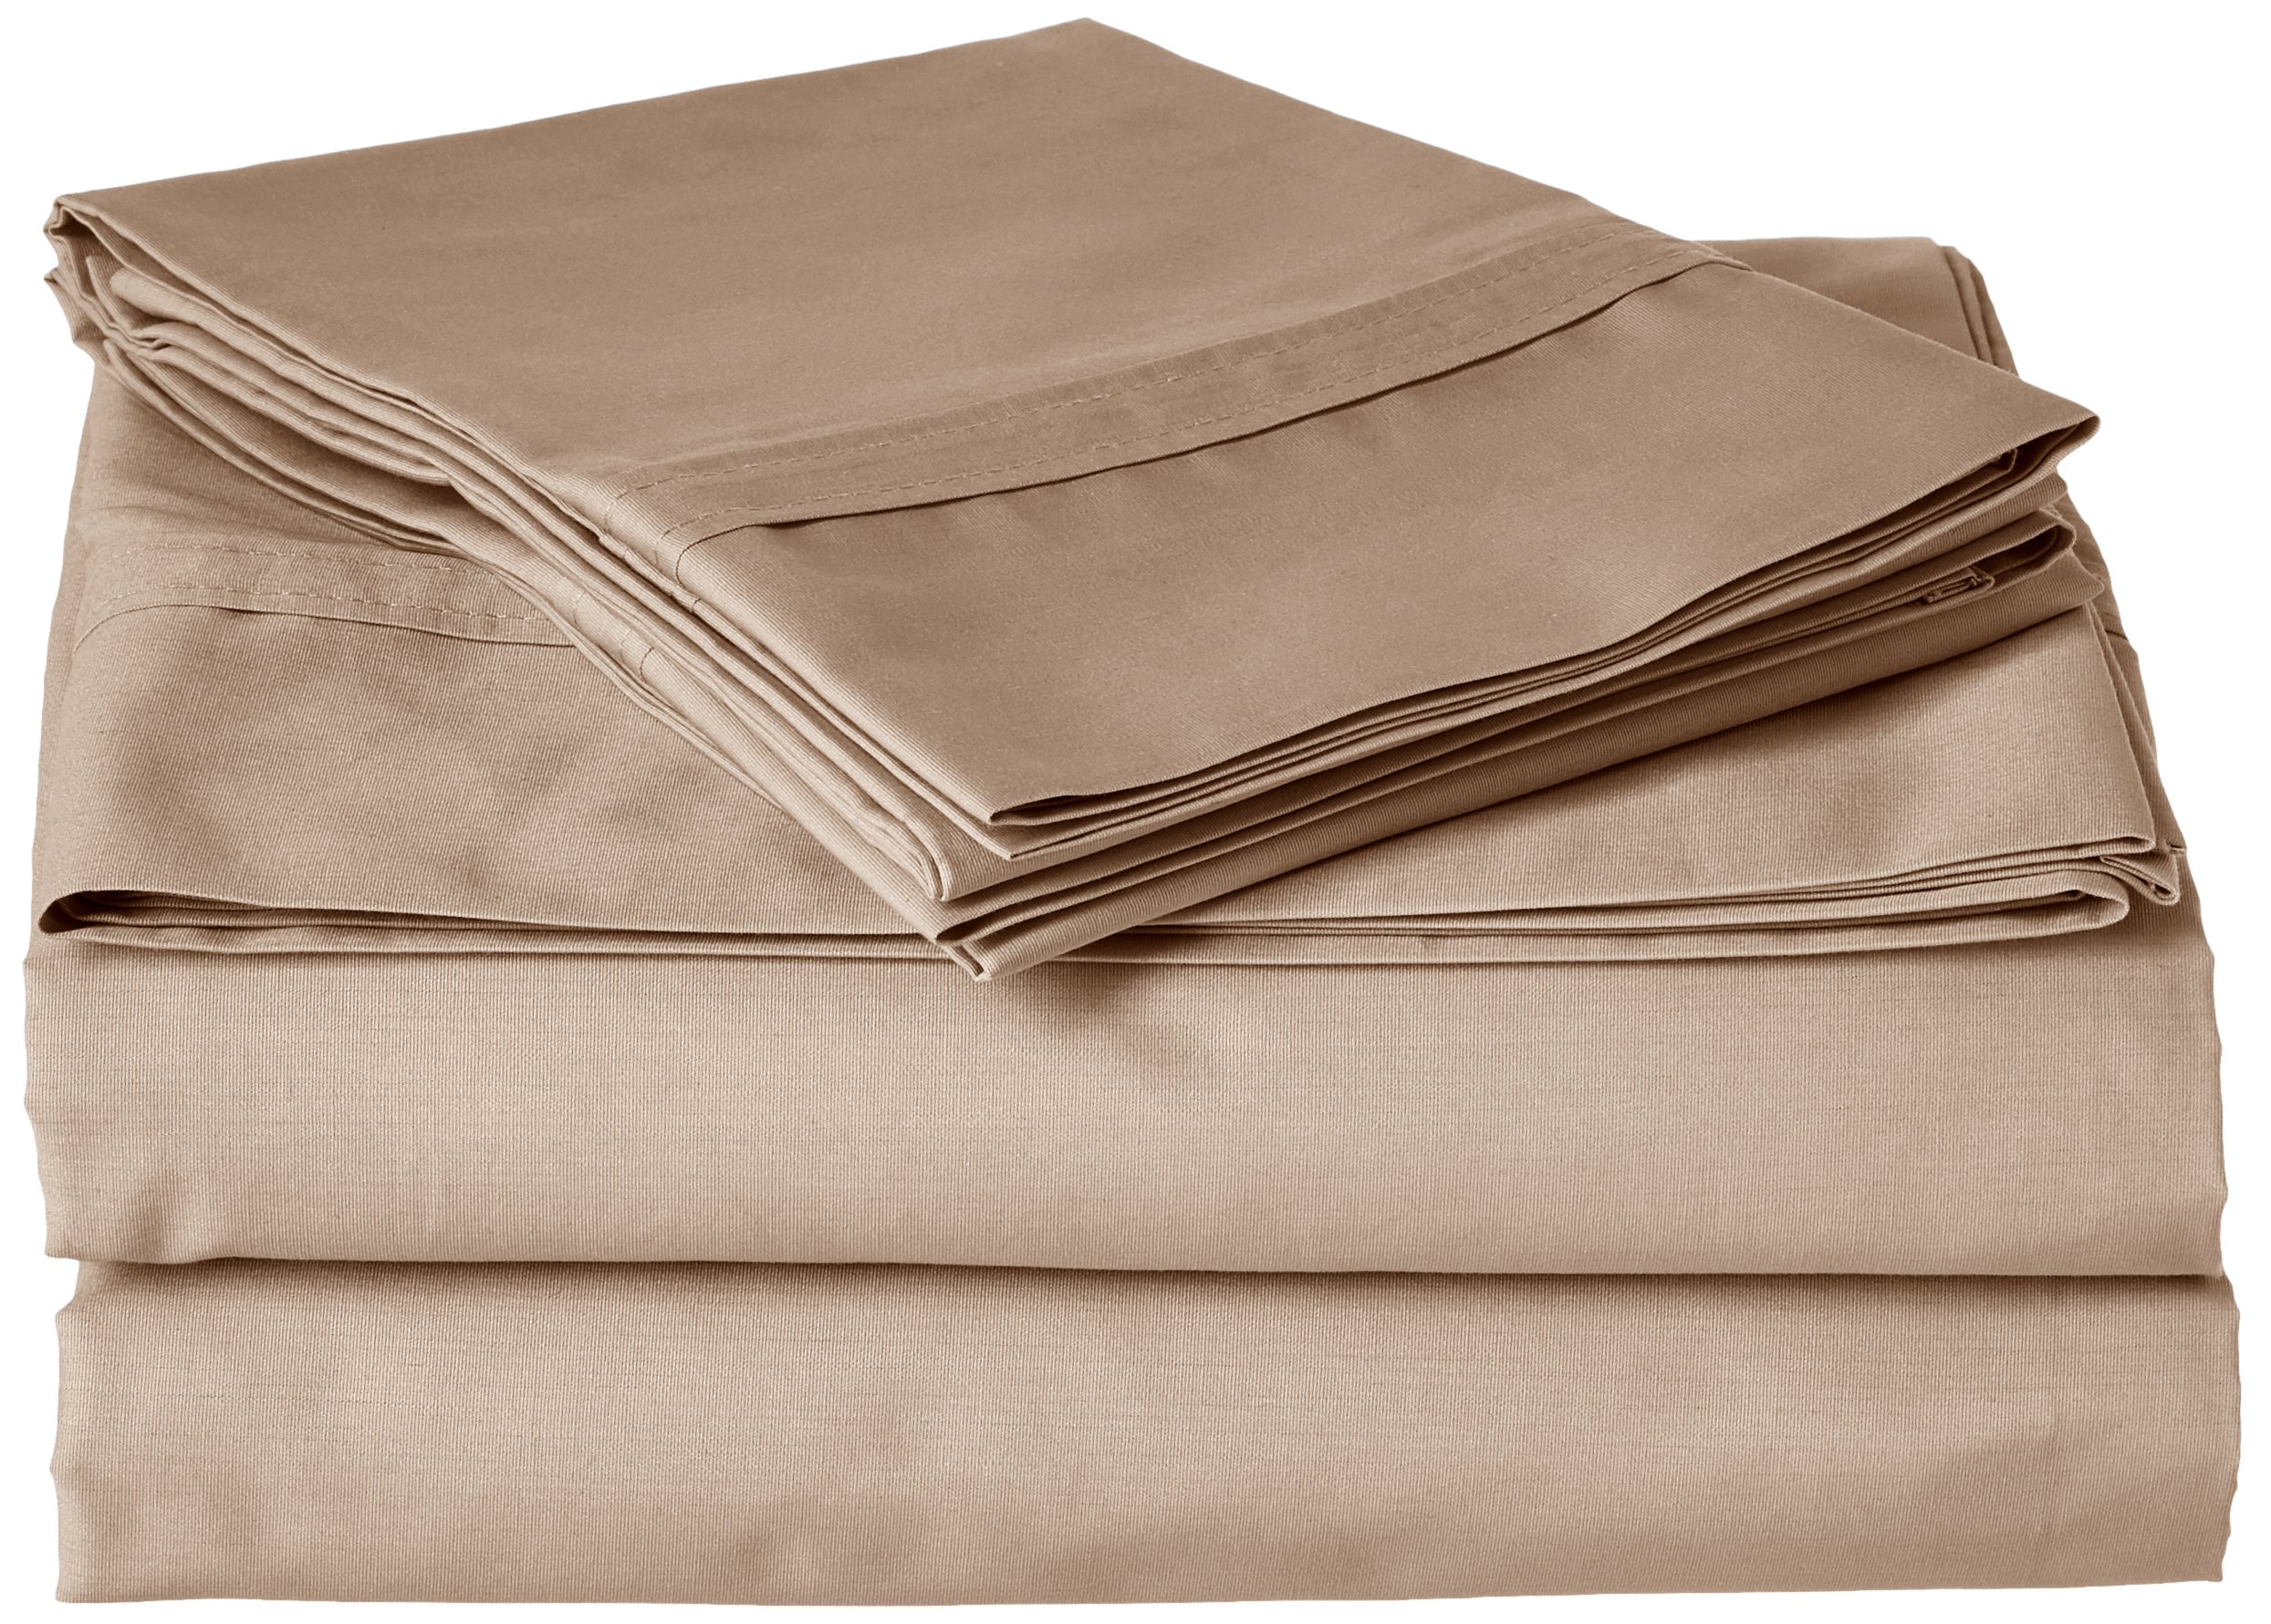 Tribeca Living Egyptian Cotton Percale 300 Thread Count Deep Pocket Sheet Set, King, Coffee